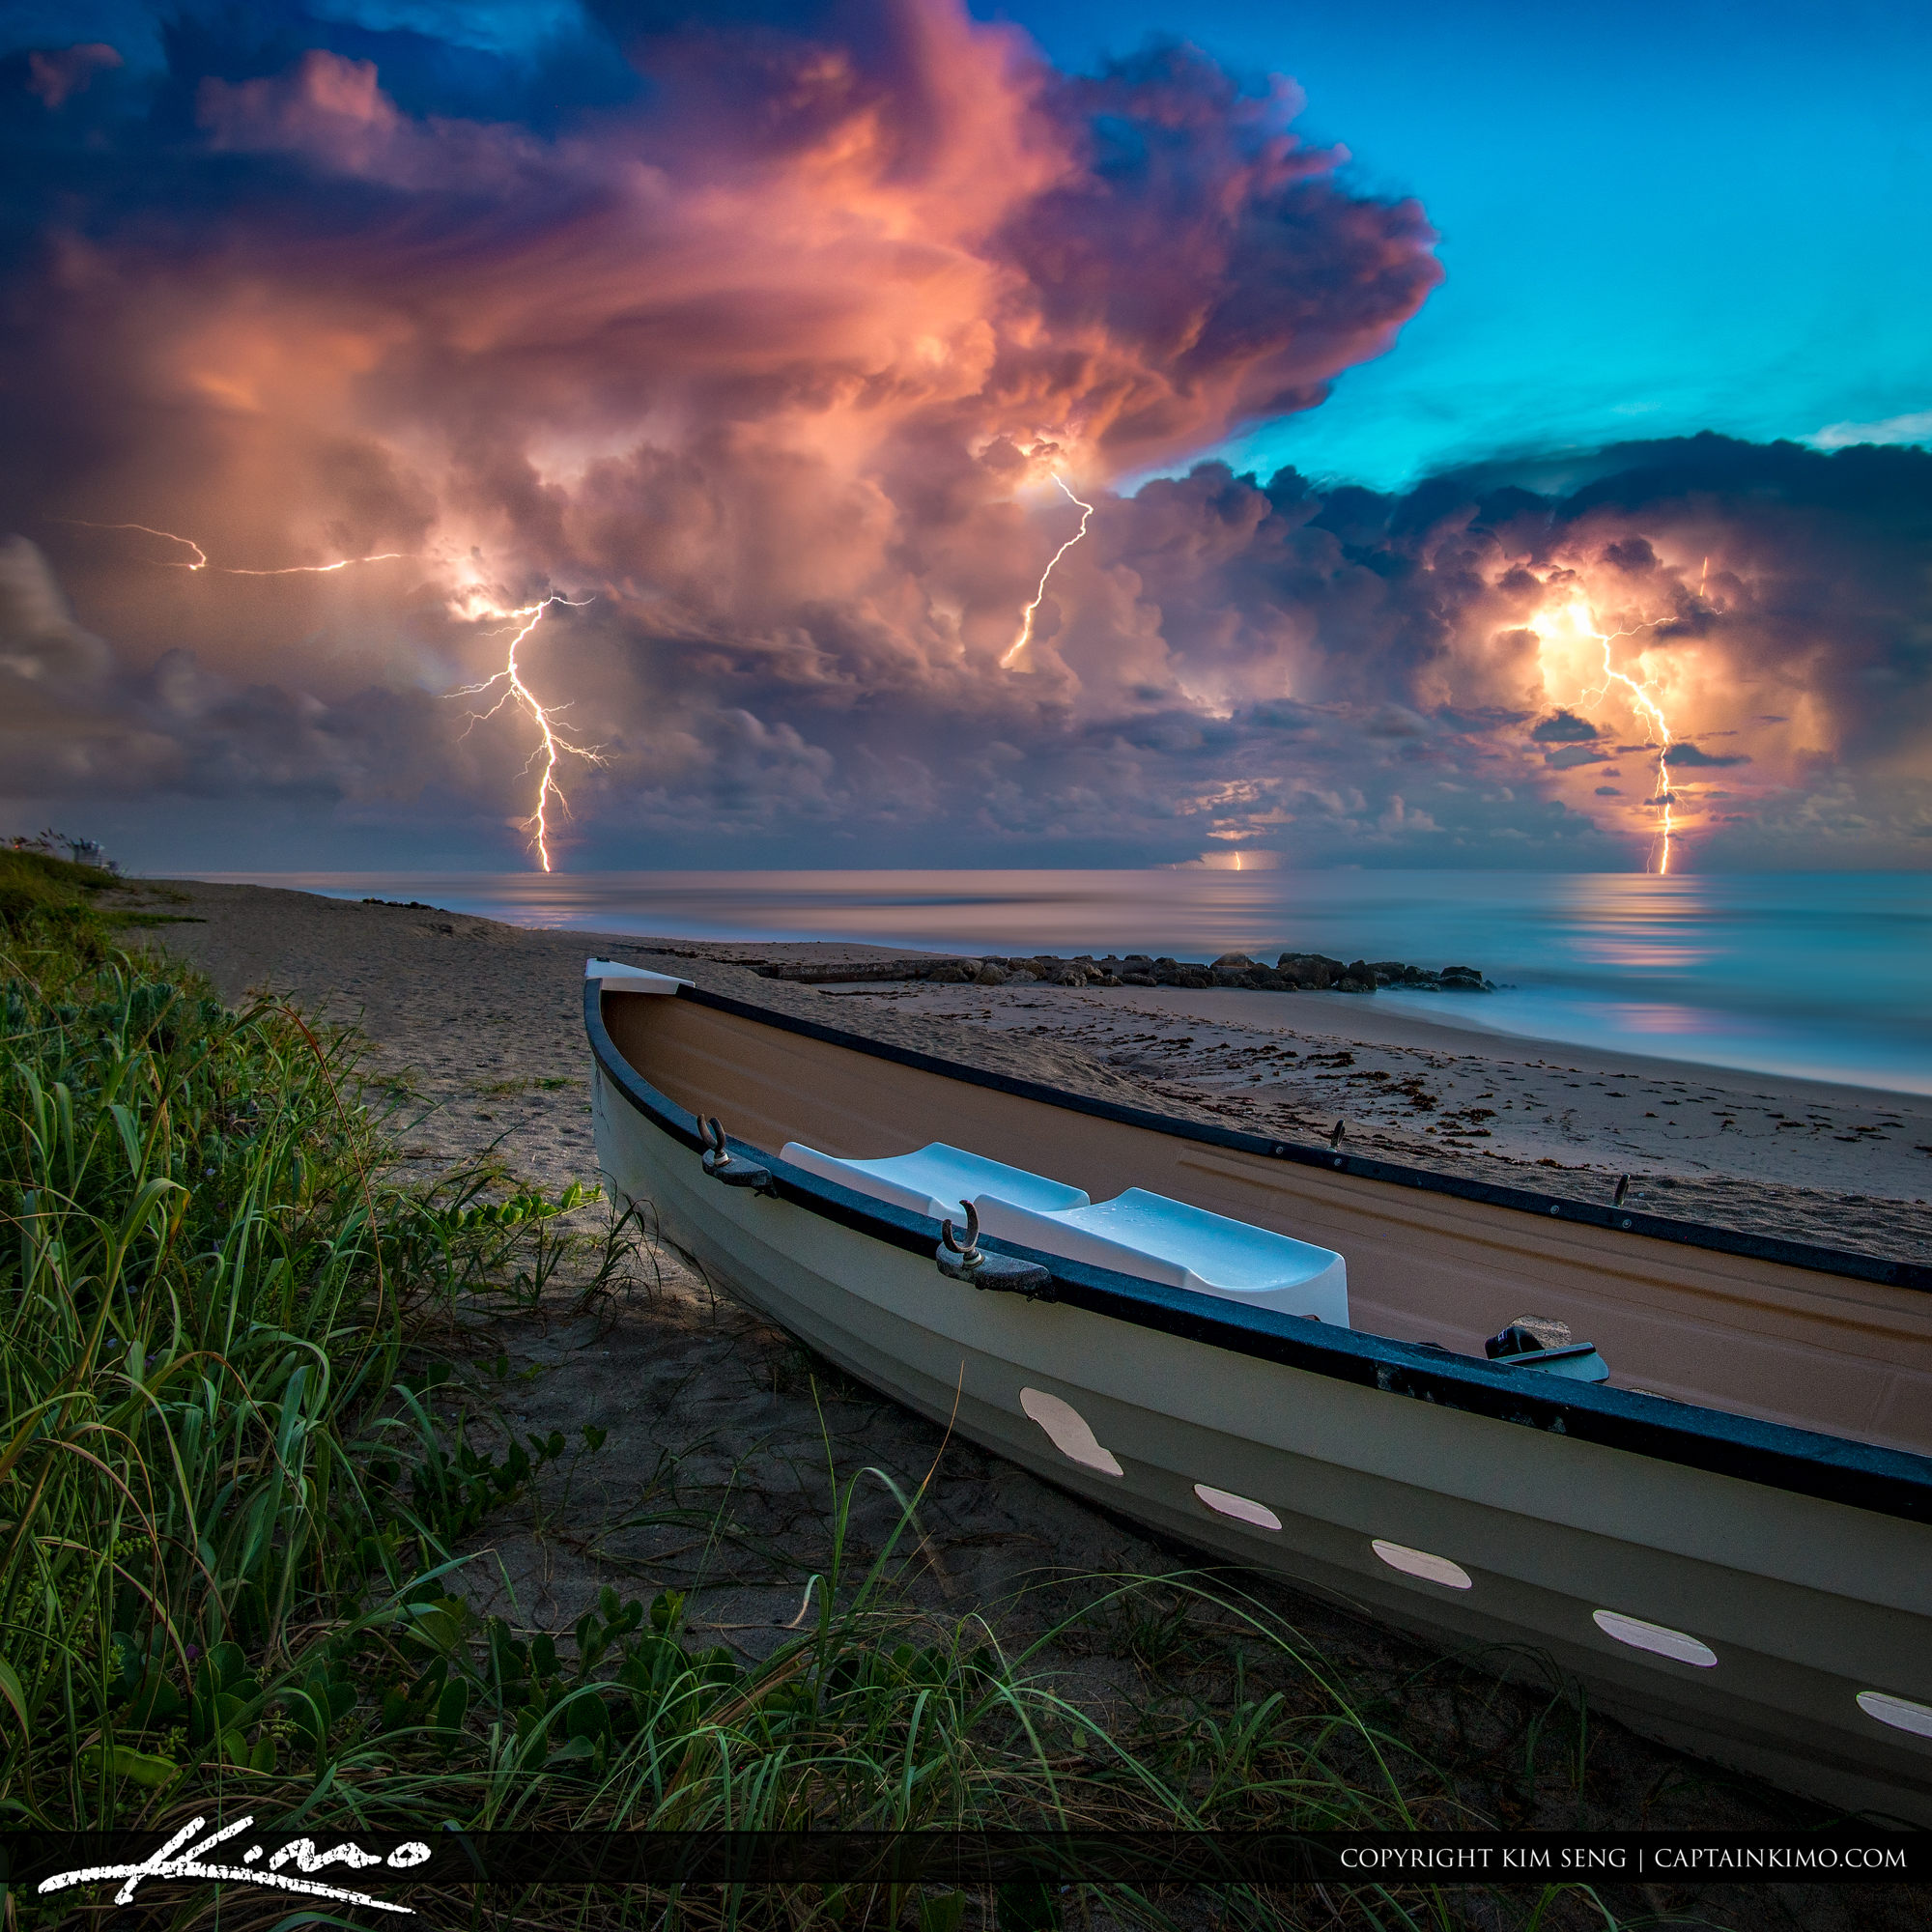 Lightning Storm Lifeguard Boat Palm Beach Island